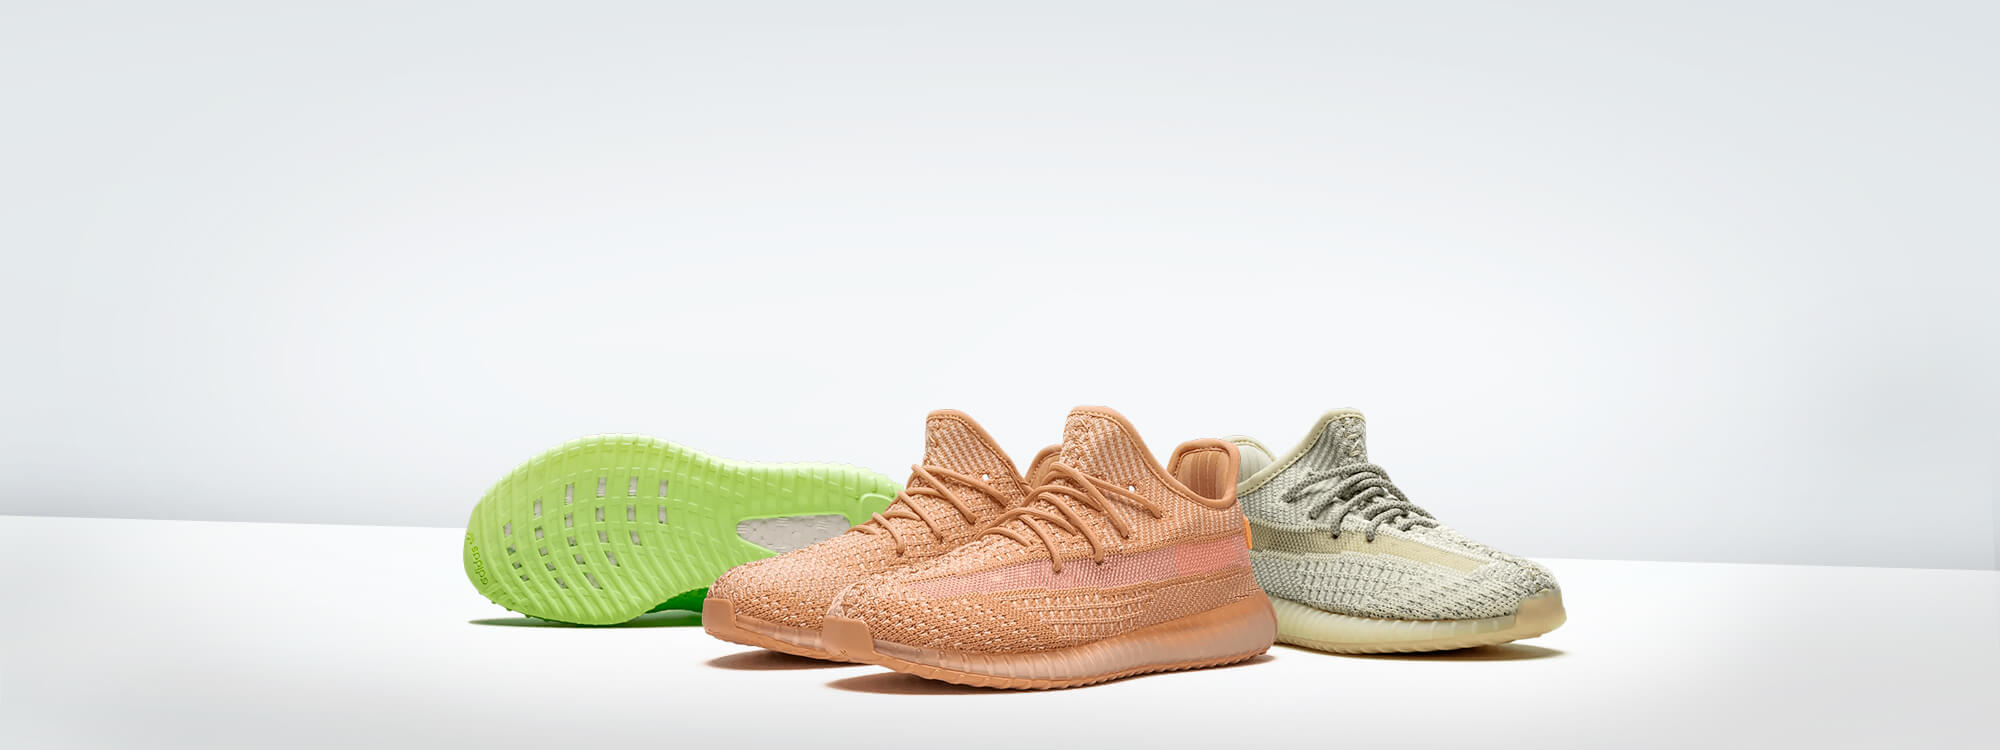 Adidas Yeezy Boost Kids  cute gear for running